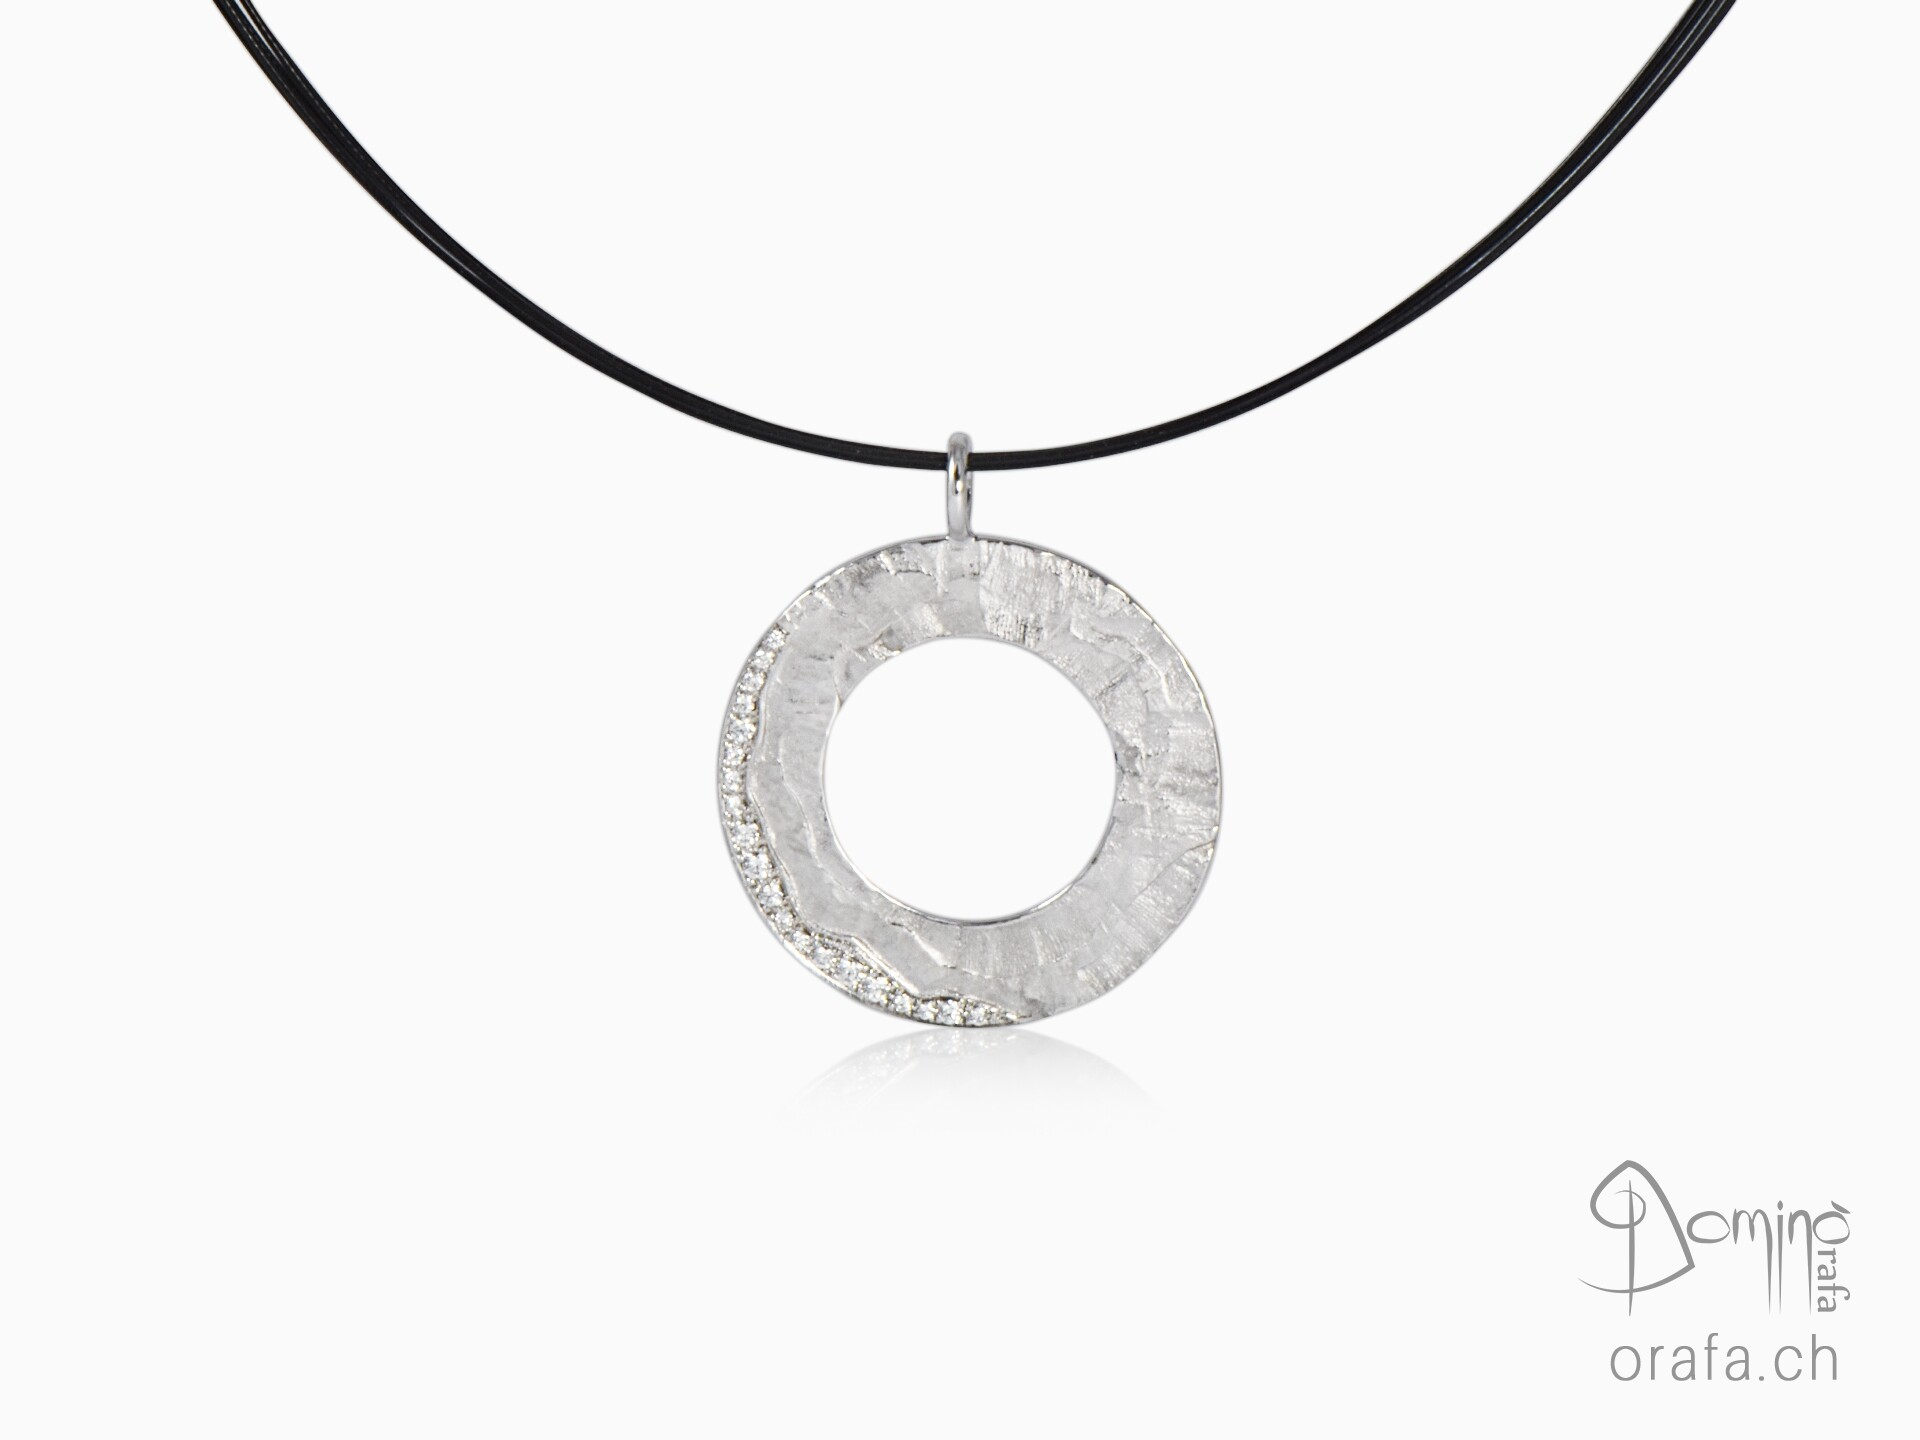 Circular Sentiero pendant with diamonds